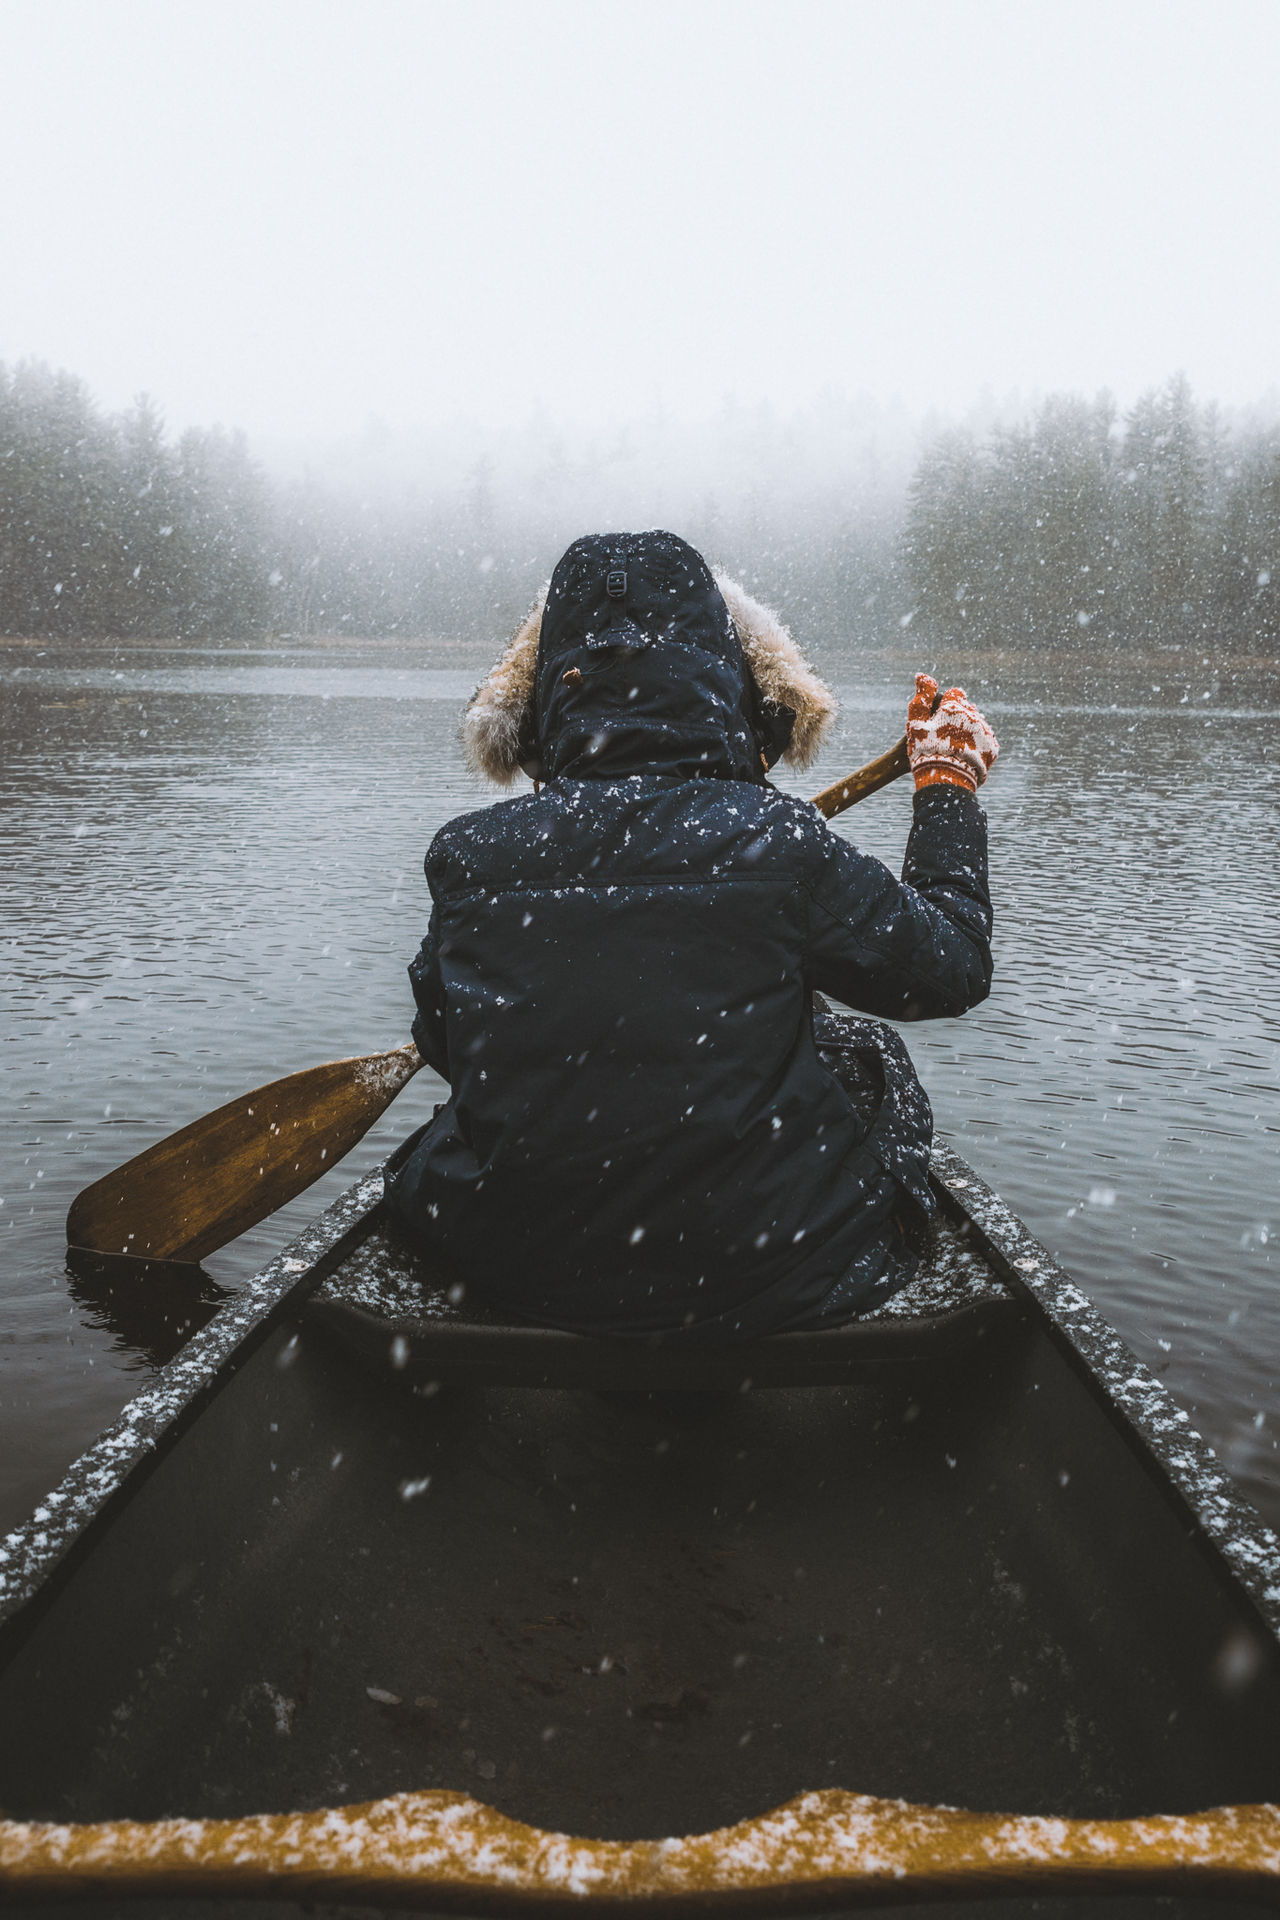 Paddling out in the Adirondack Snow // Adventure Fog One Person Outdoors Warm Clothing Leisure Activity Nature Water Beauty In Nature Oar Nature Winter Scenics Adirondack Mountains Snowing Canoe Best Shots EyeEm Rear View Non Urban Scene People Outdoors Photograpghy  Lifestyles Cold Temperature Beauty In Nature Environment